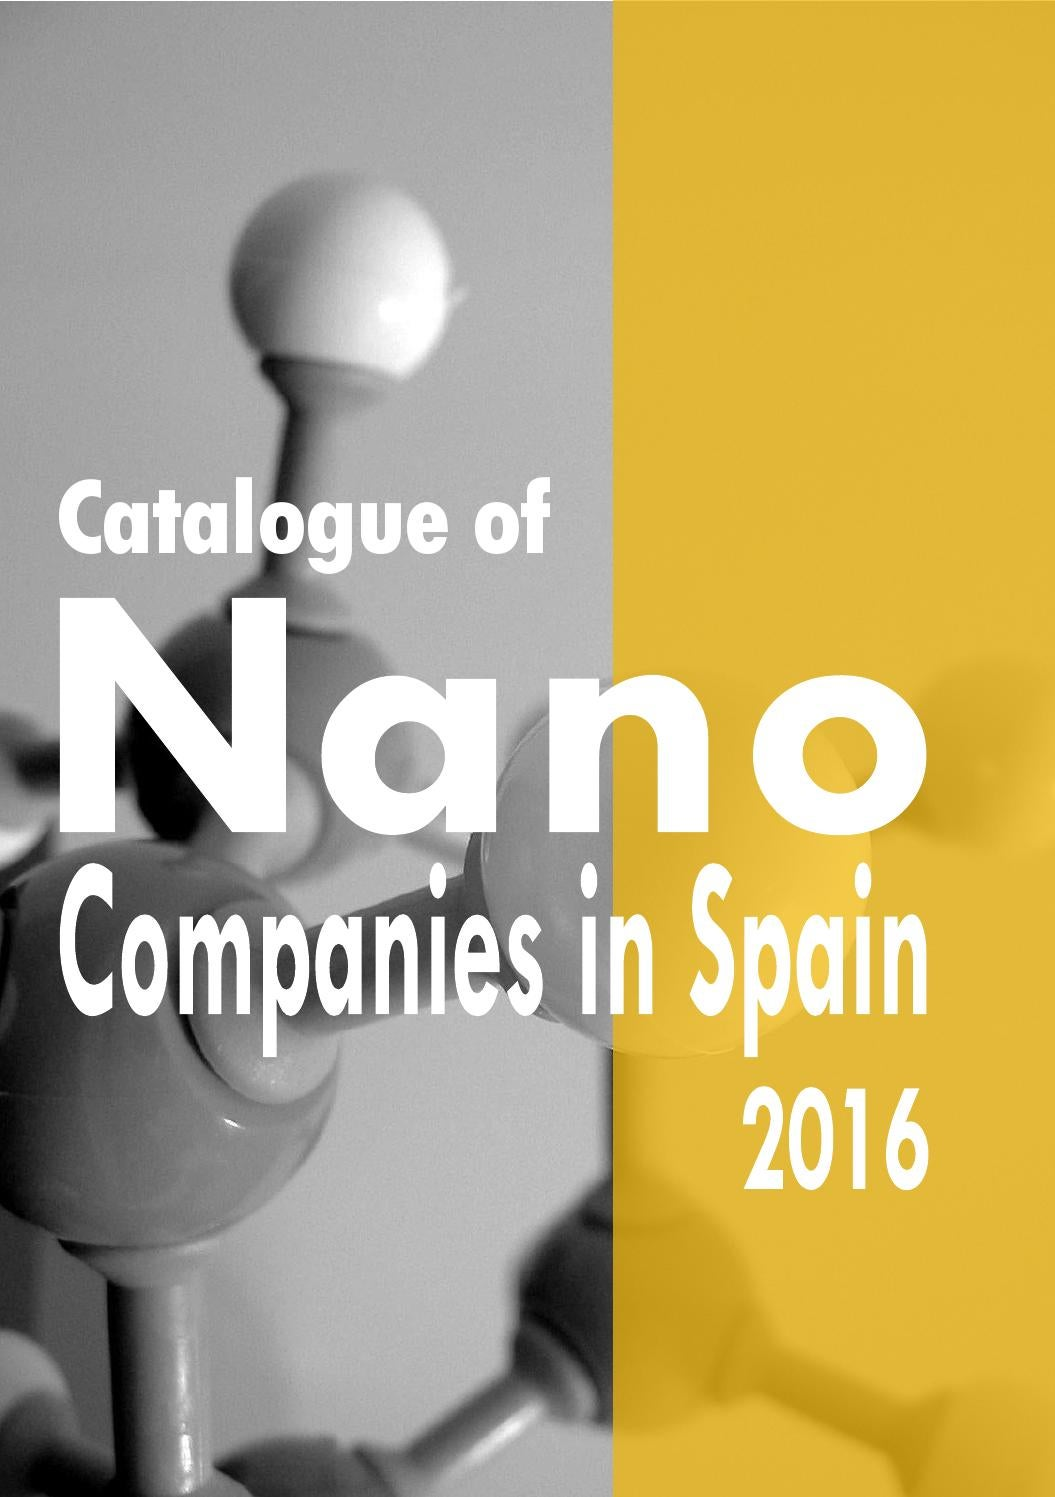 Catalogue Of Nano Companies In Spain V6 2016 By Phantoms  # Muebles Jaime Ibanez